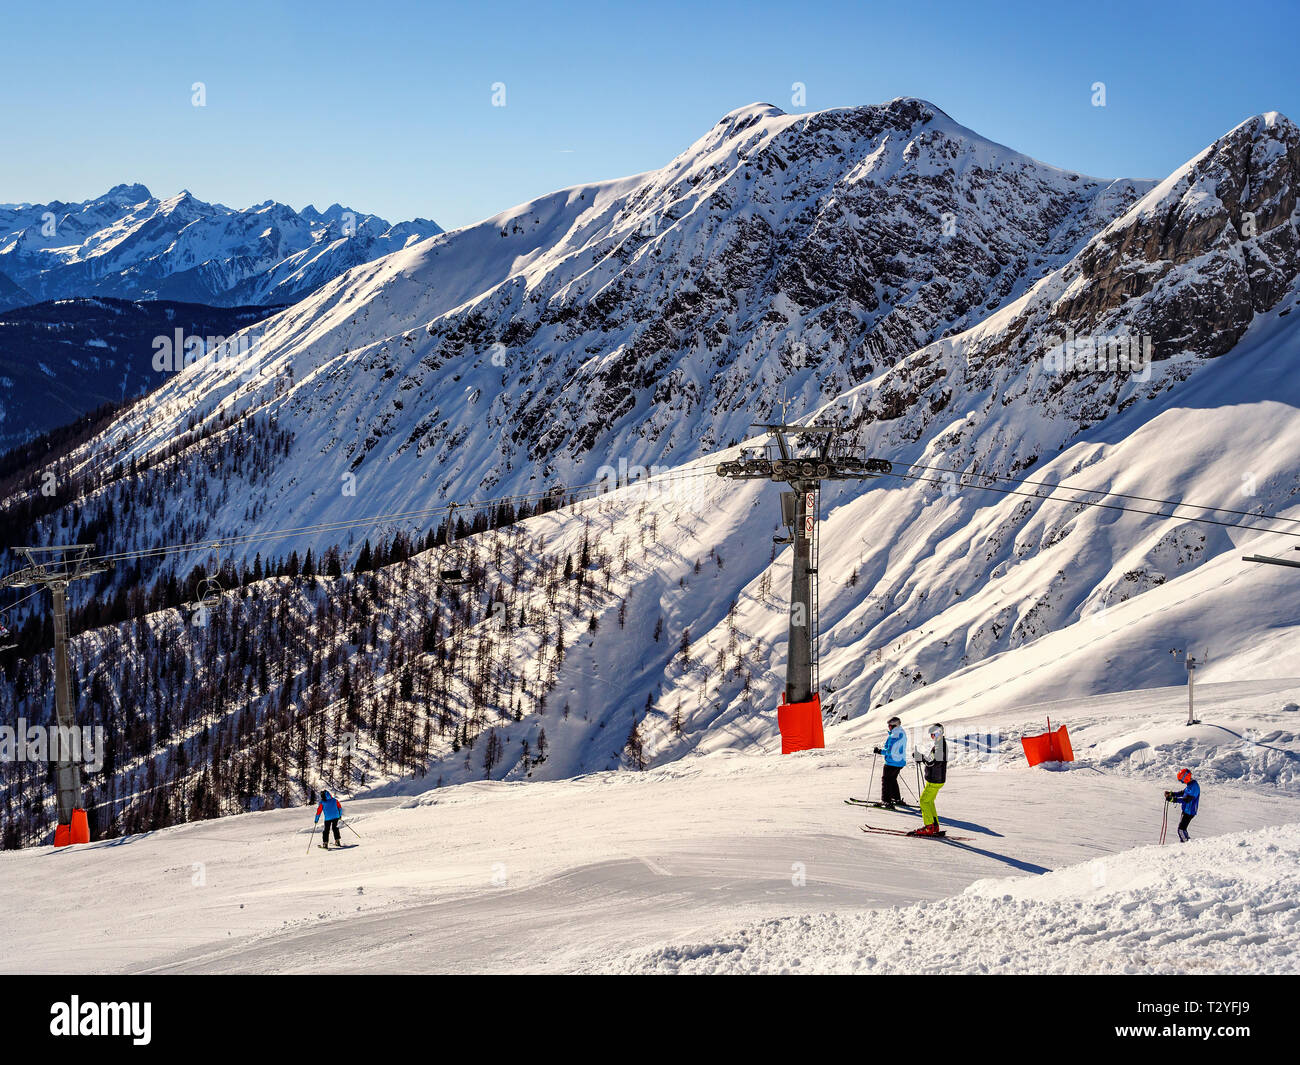 Wintersports at hillstation Alpjoch, skiing area Hochimst, Imst, Tyrol, Austria, Europe Stock Photo